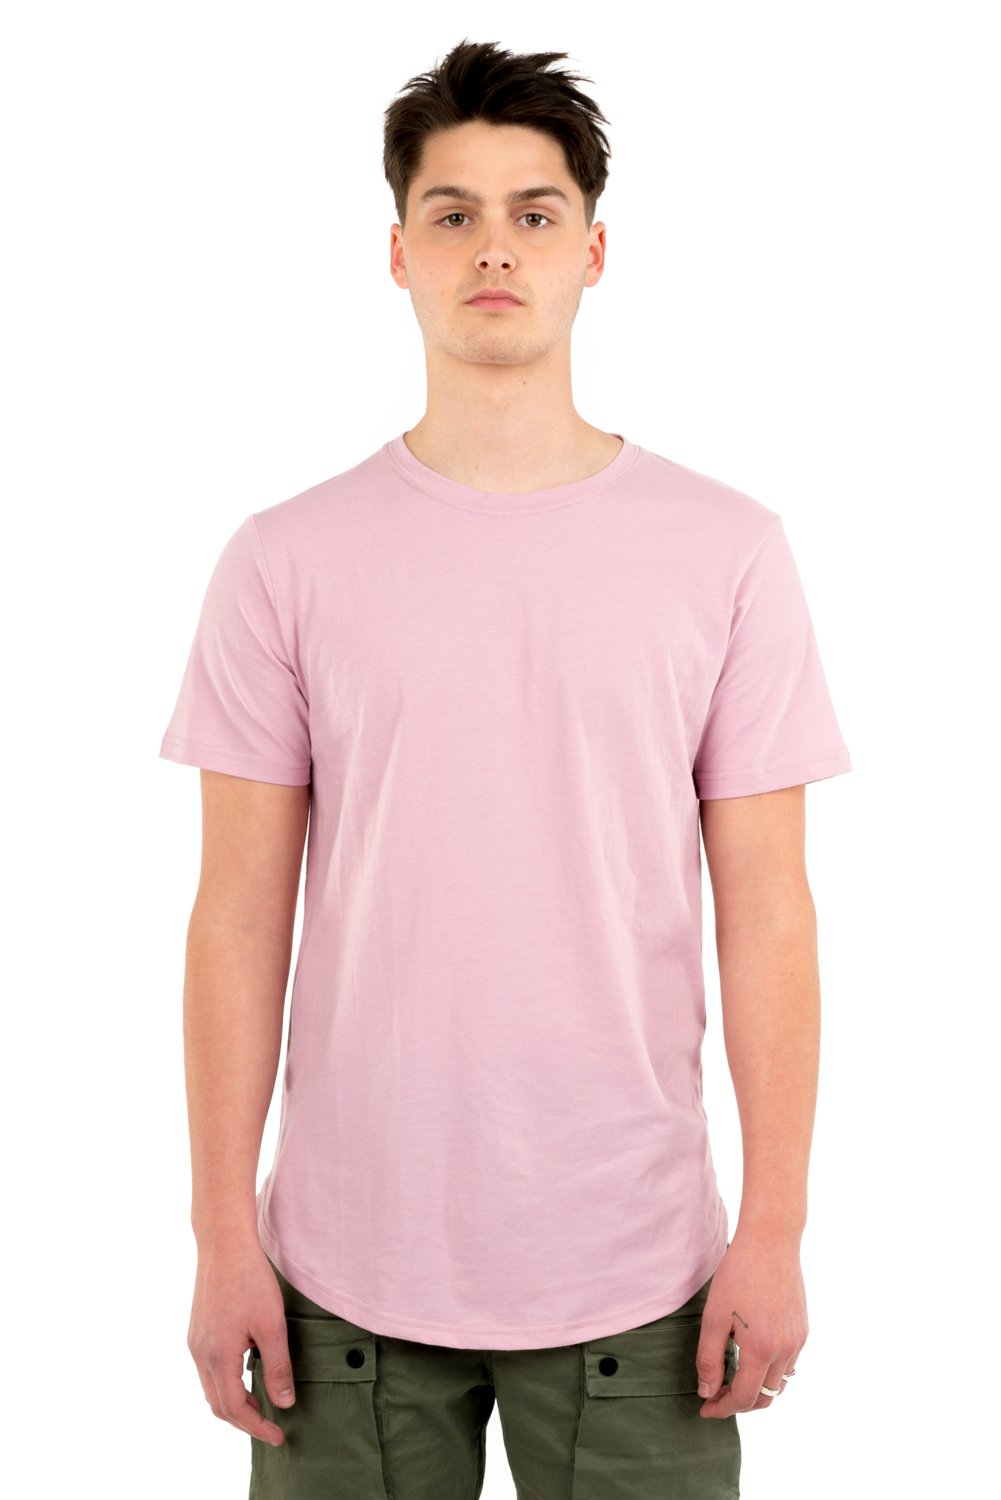 KUWALLA M'S T-SHIRTS DUSTY PINK S EAZY SCOOP TEE